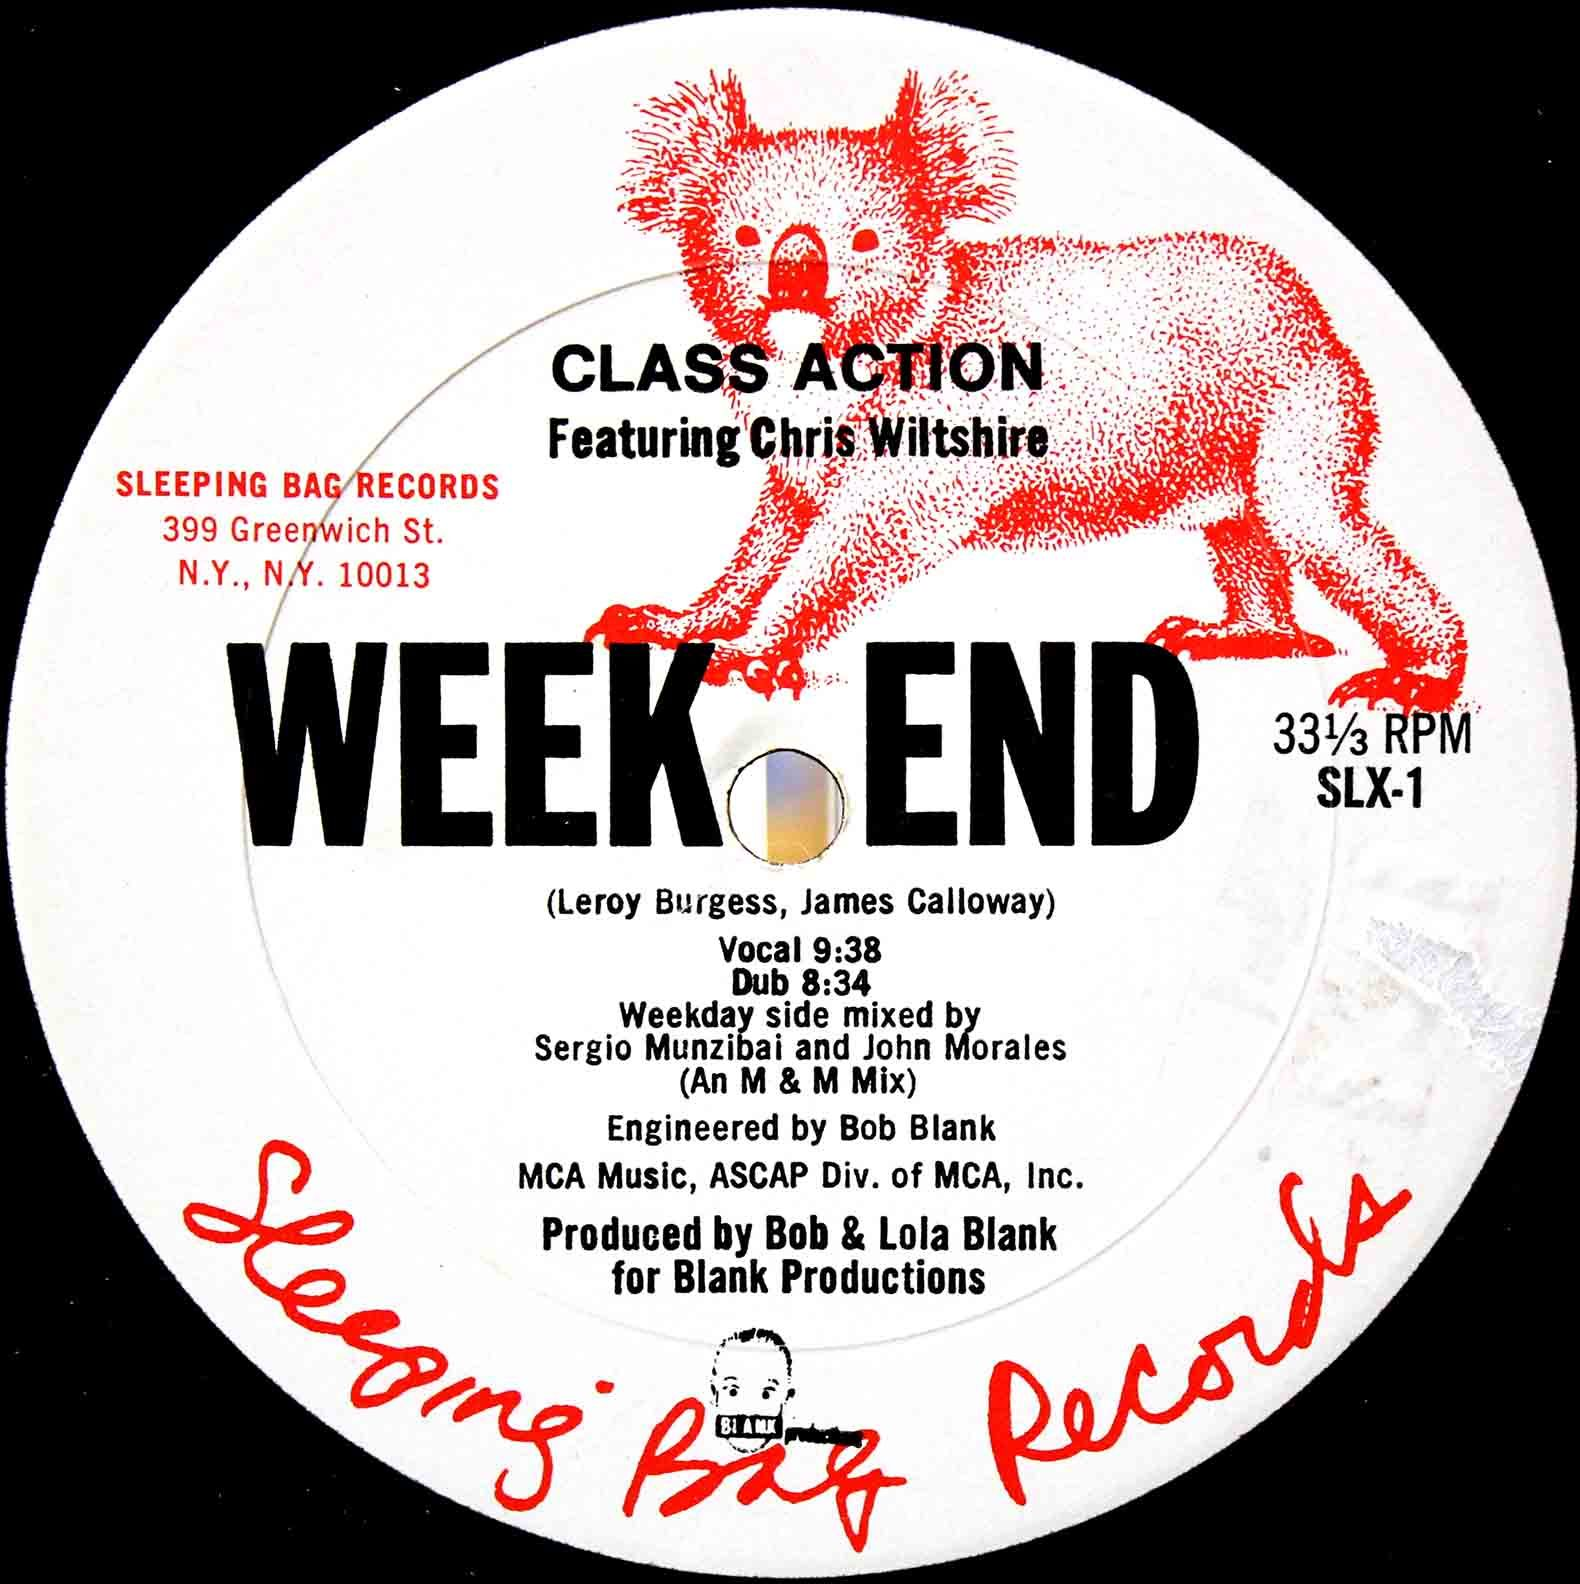 Class Action - Weekend 04